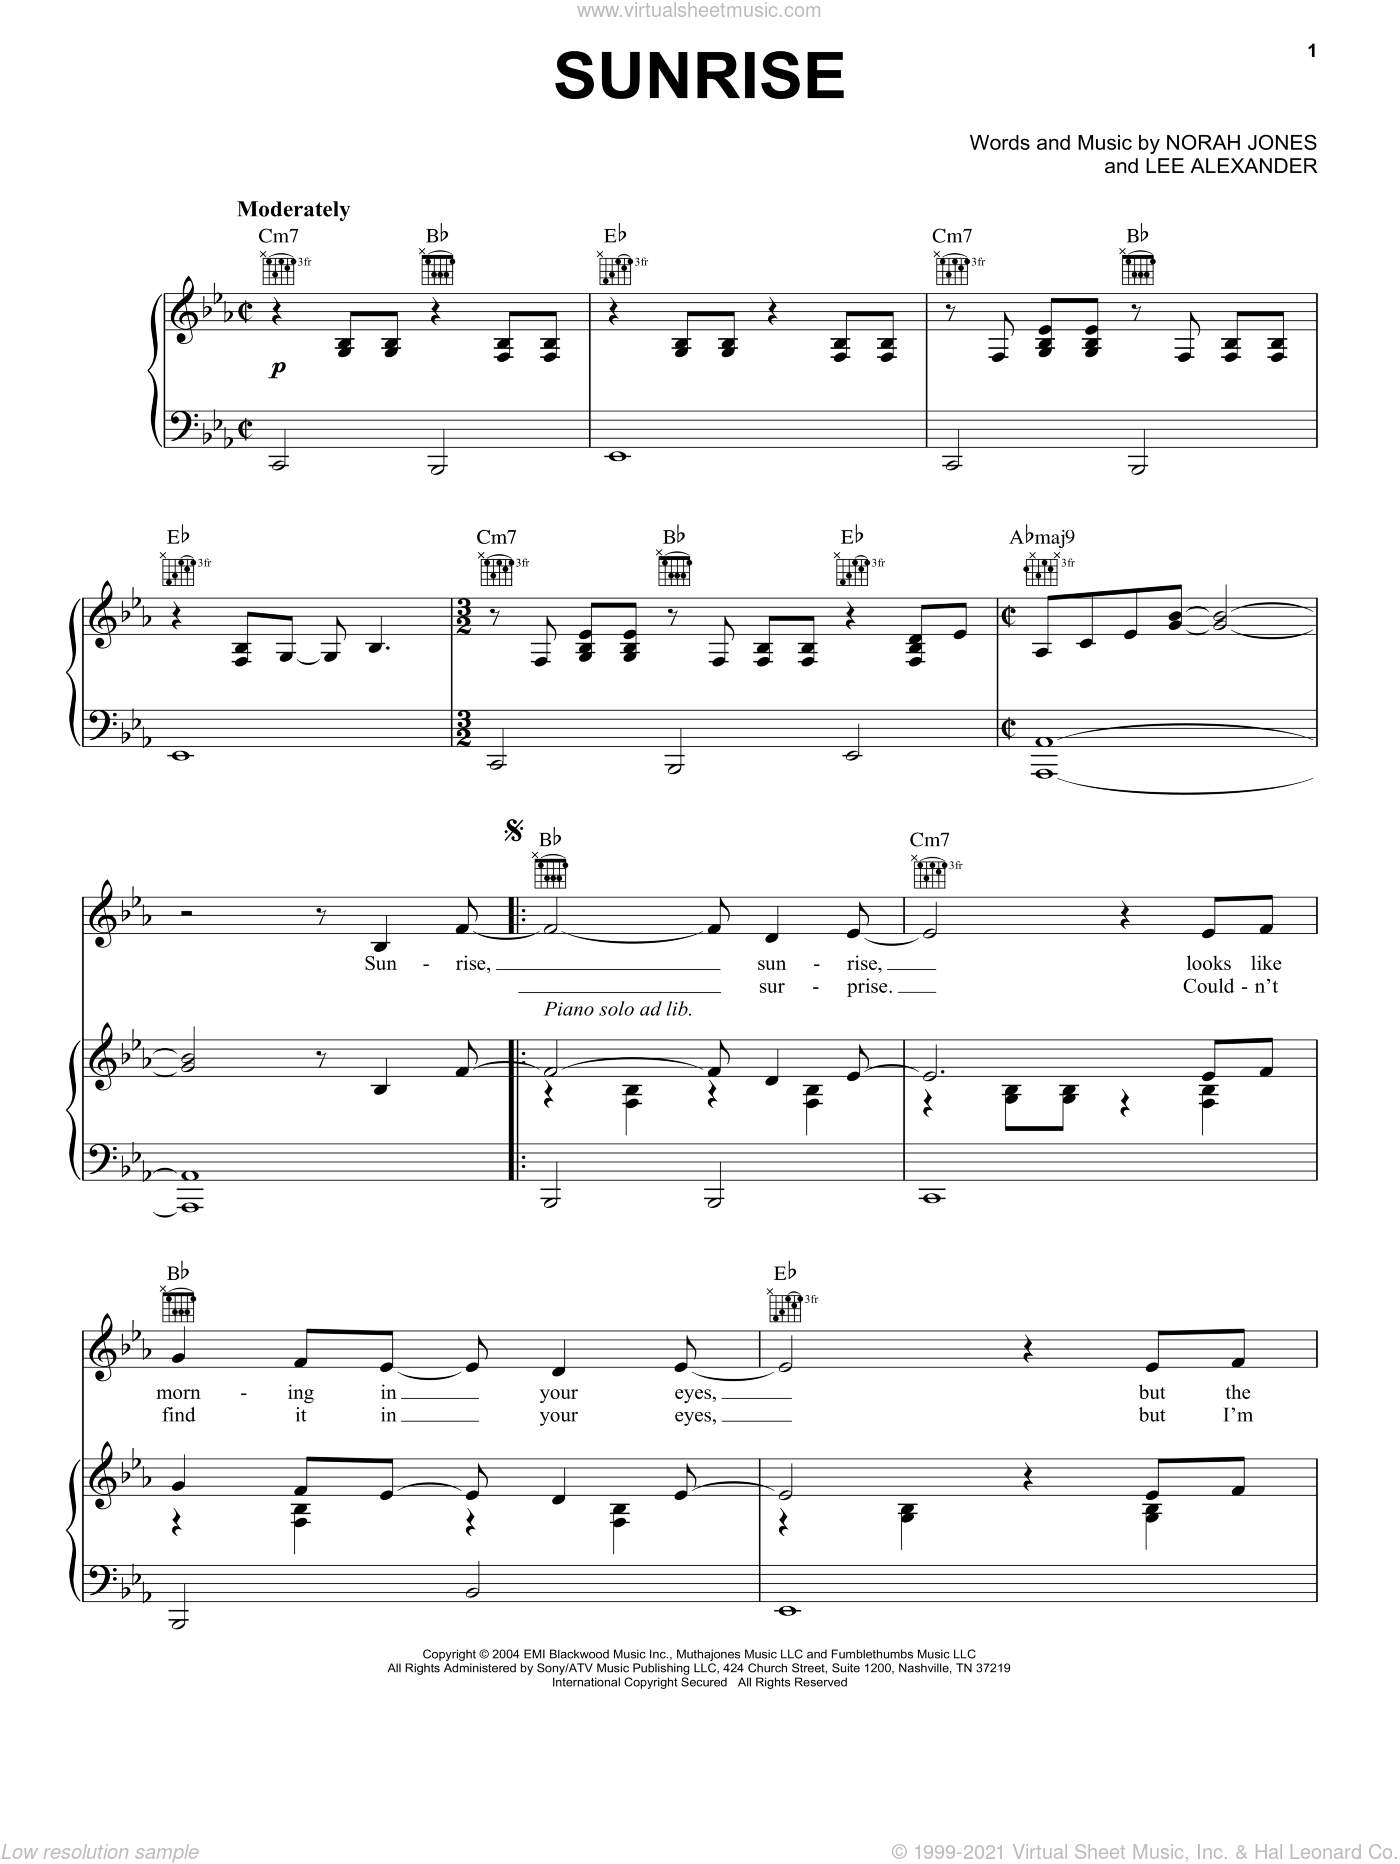 Sunrise sheet music for voice, piano or guitar by Norah Jones and Lee Alexander, intermediate skill level